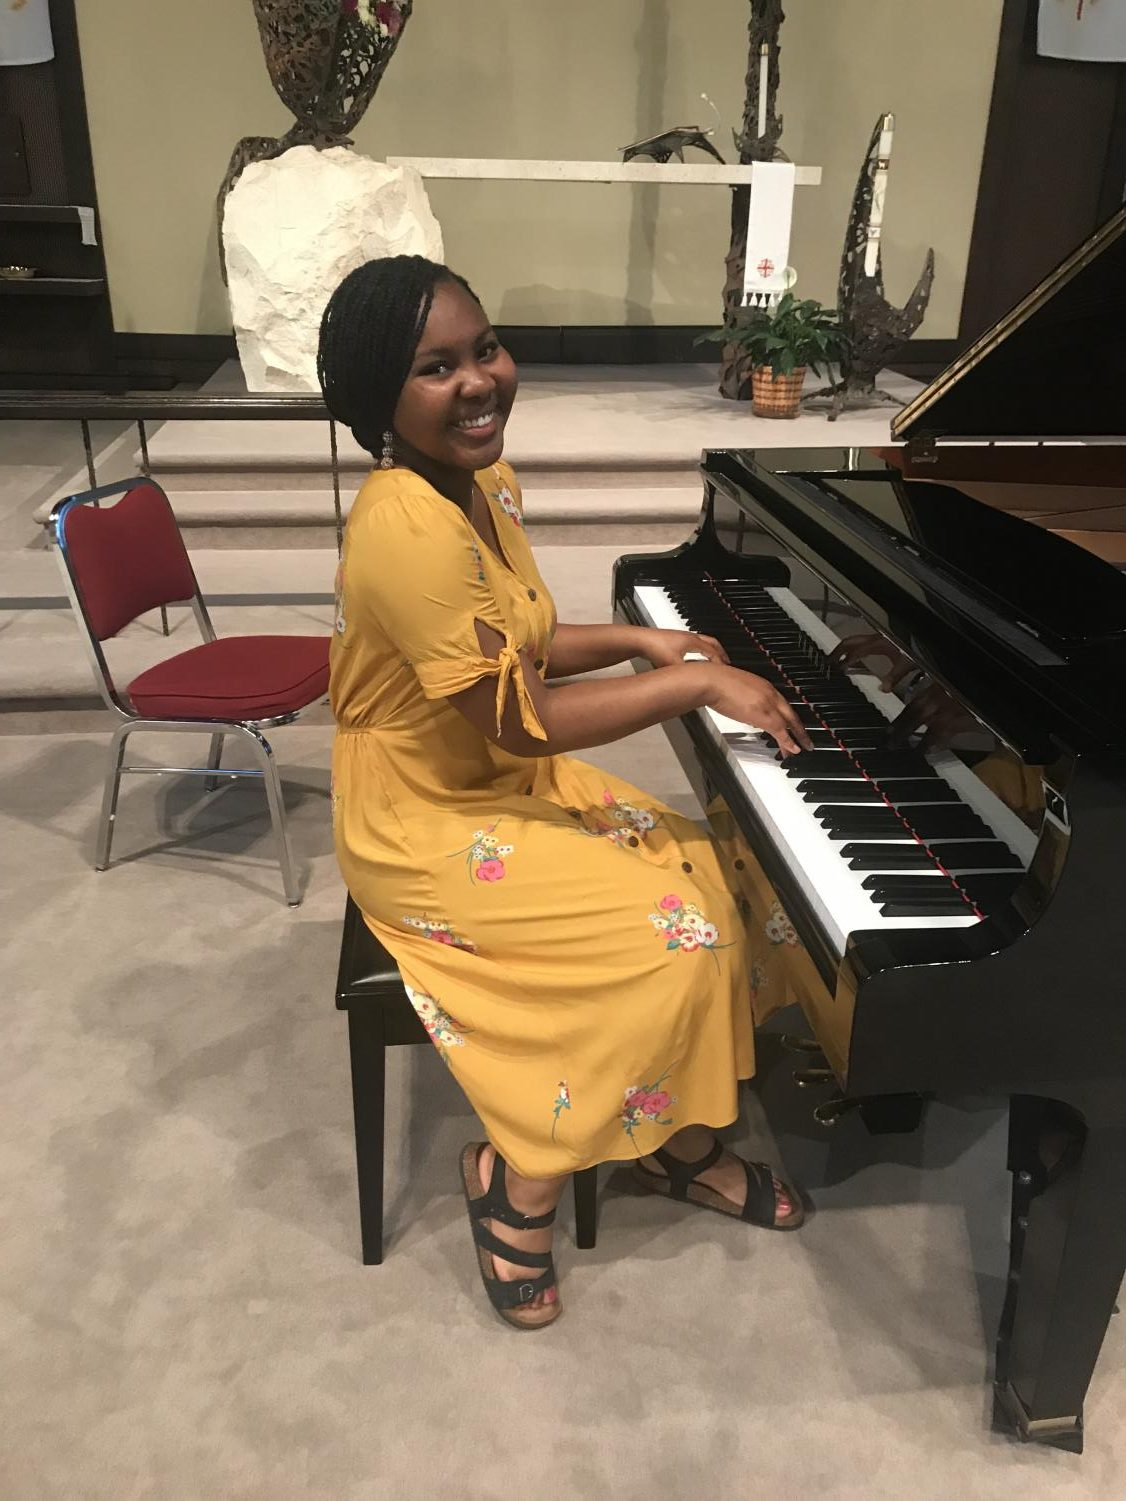 Amber Matthews demonstrates one of her greatest passions of playing the piano.